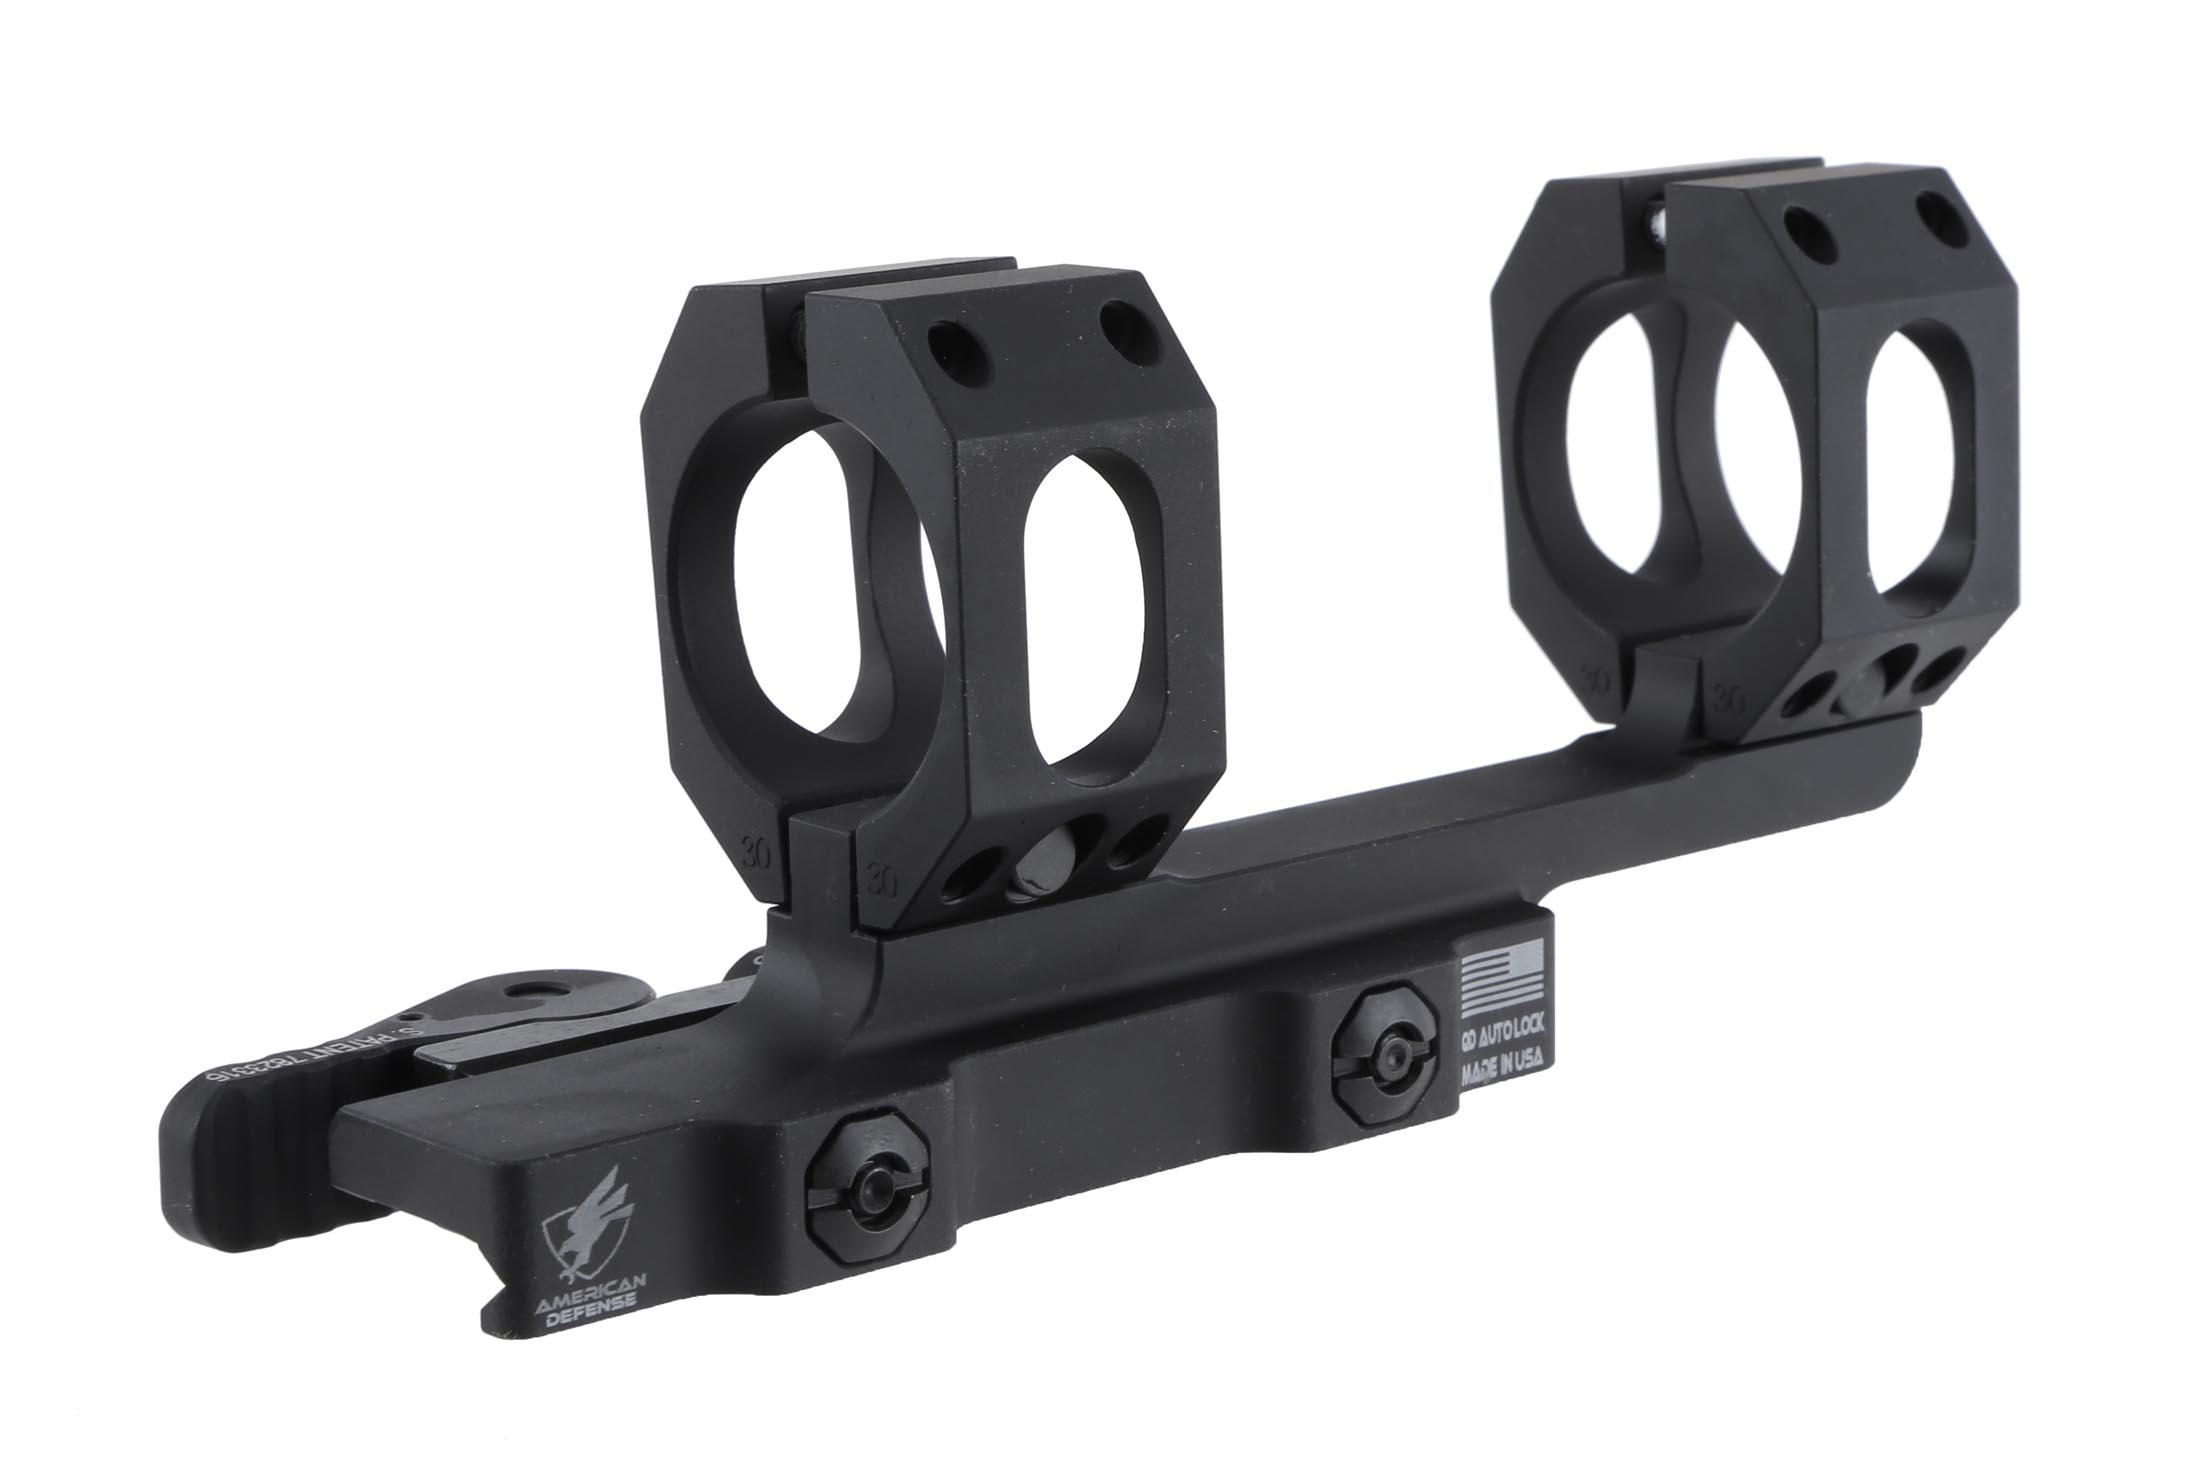 The American Defense 30mm Recon quick detach scope mount is low profile for optics with 56mm objective lens